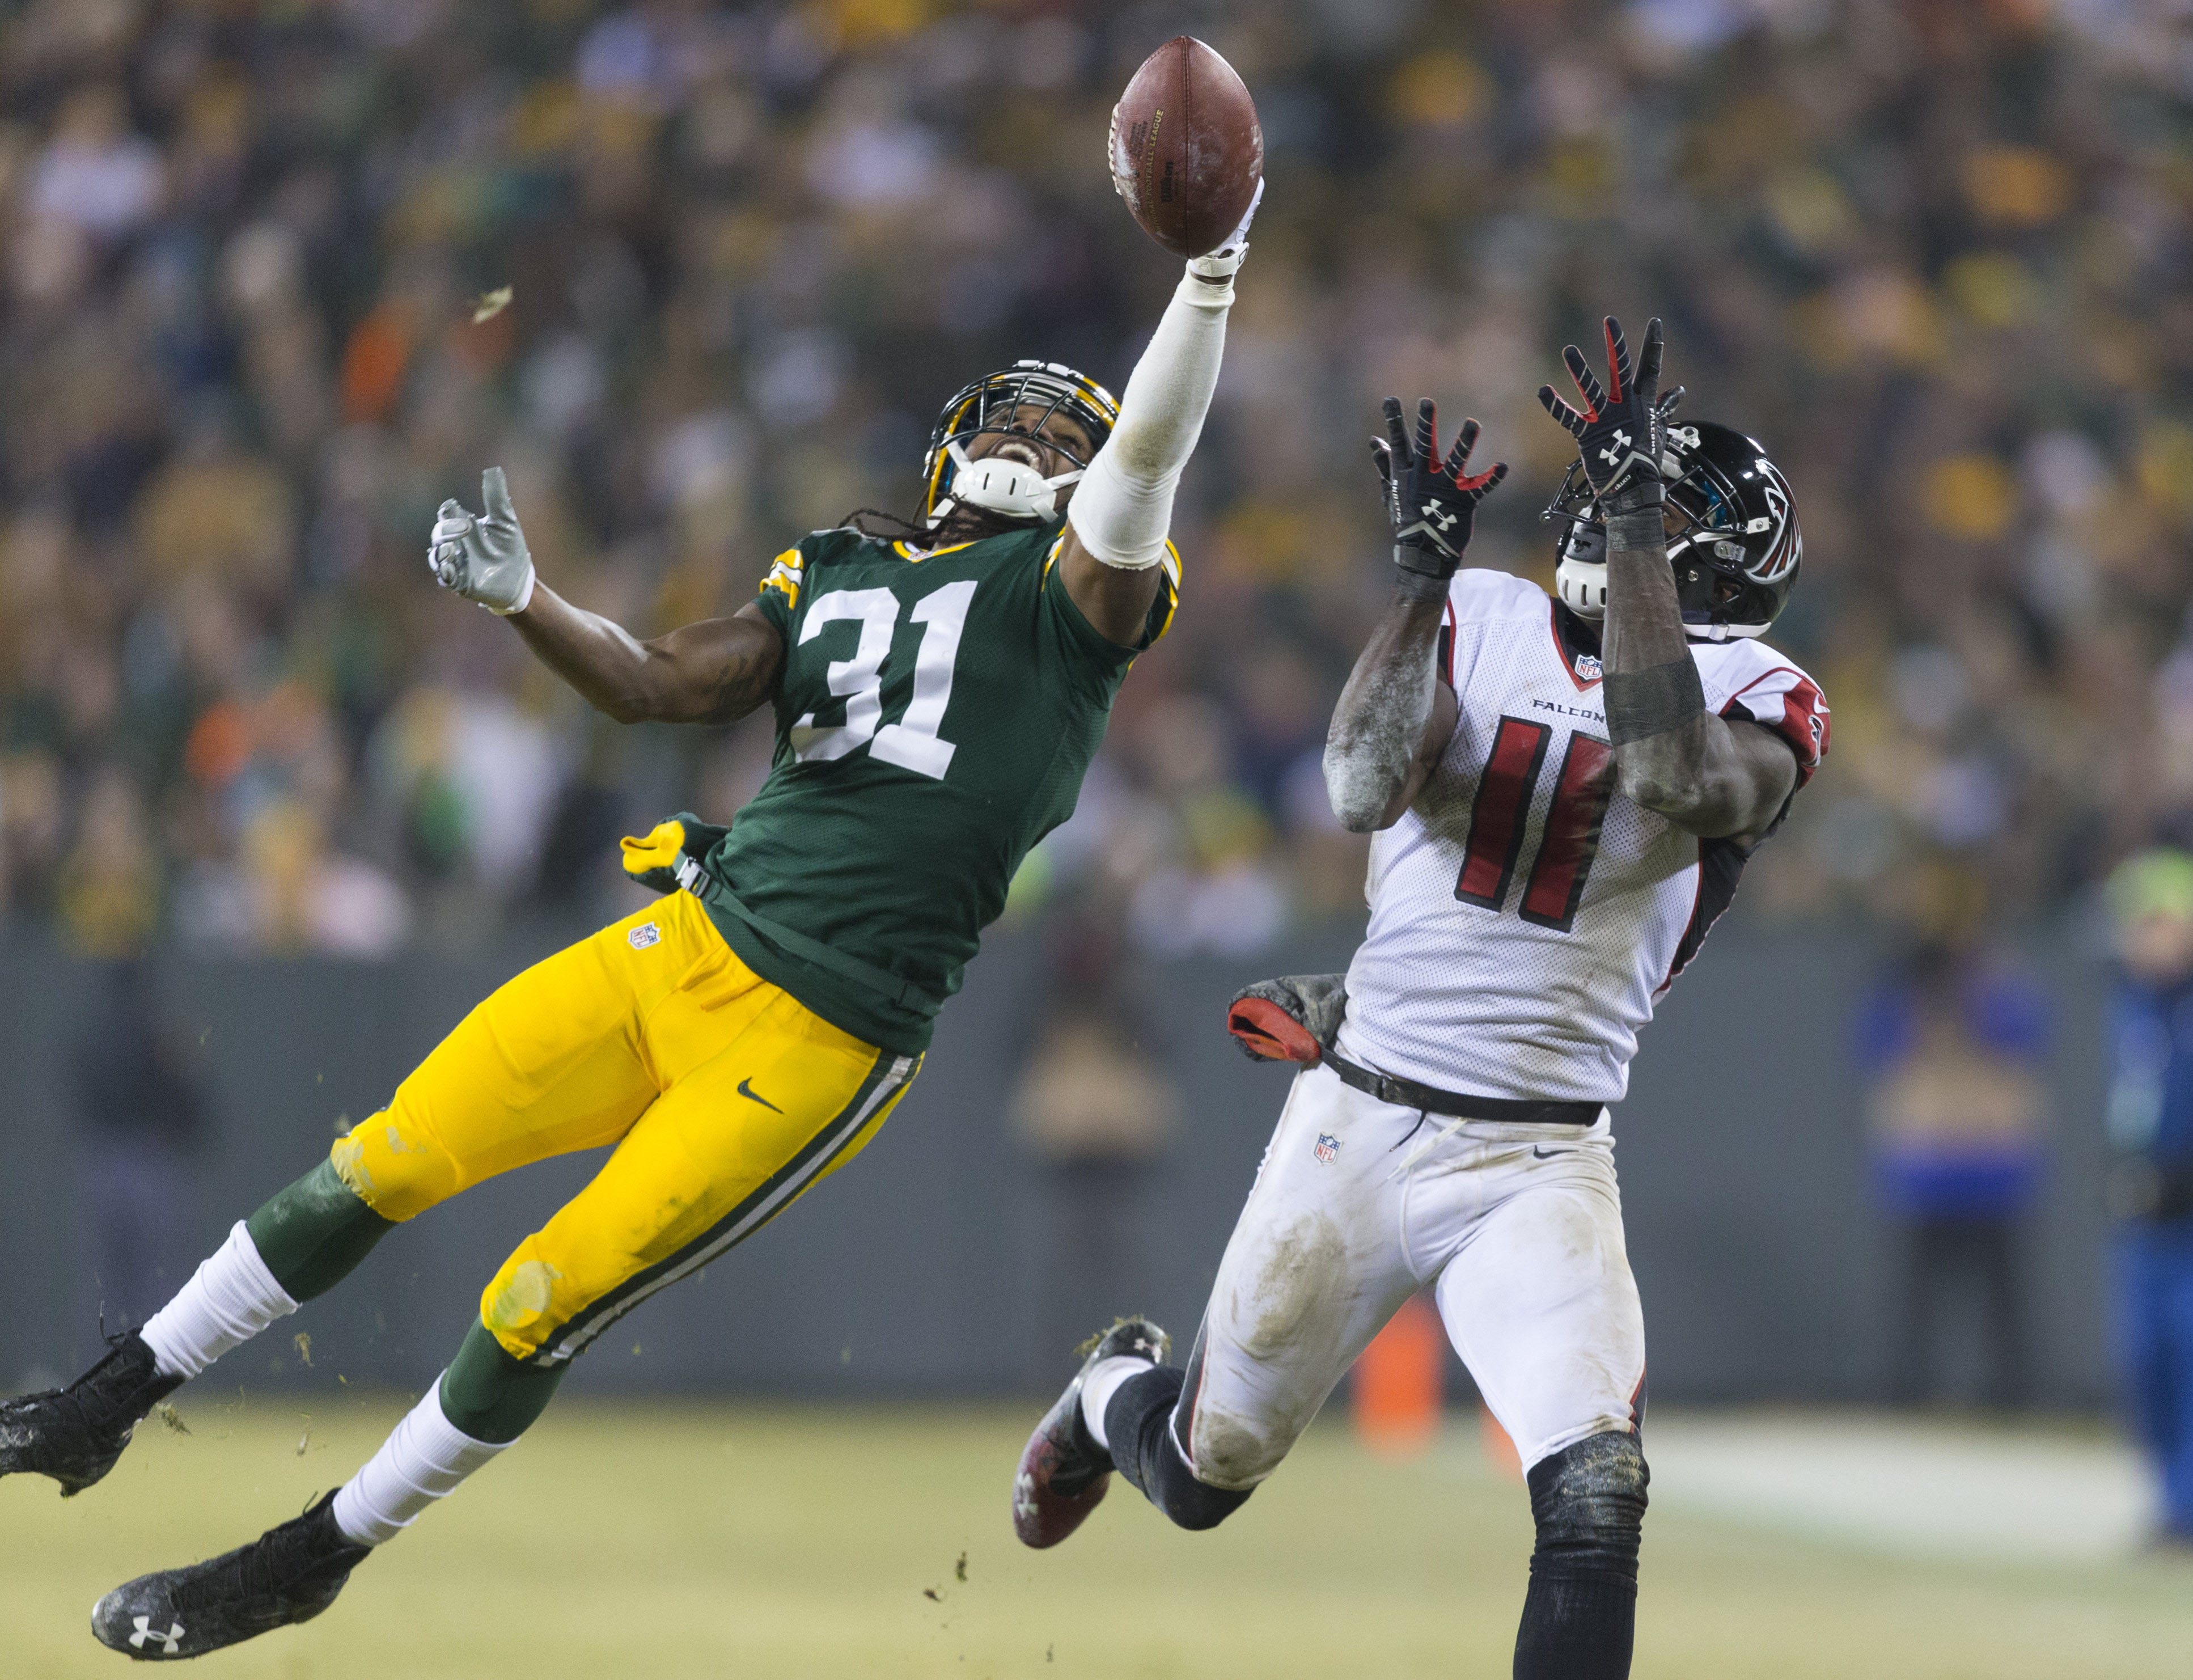 8259855-nfl-atlanta-falcons-at-green-bay-packers